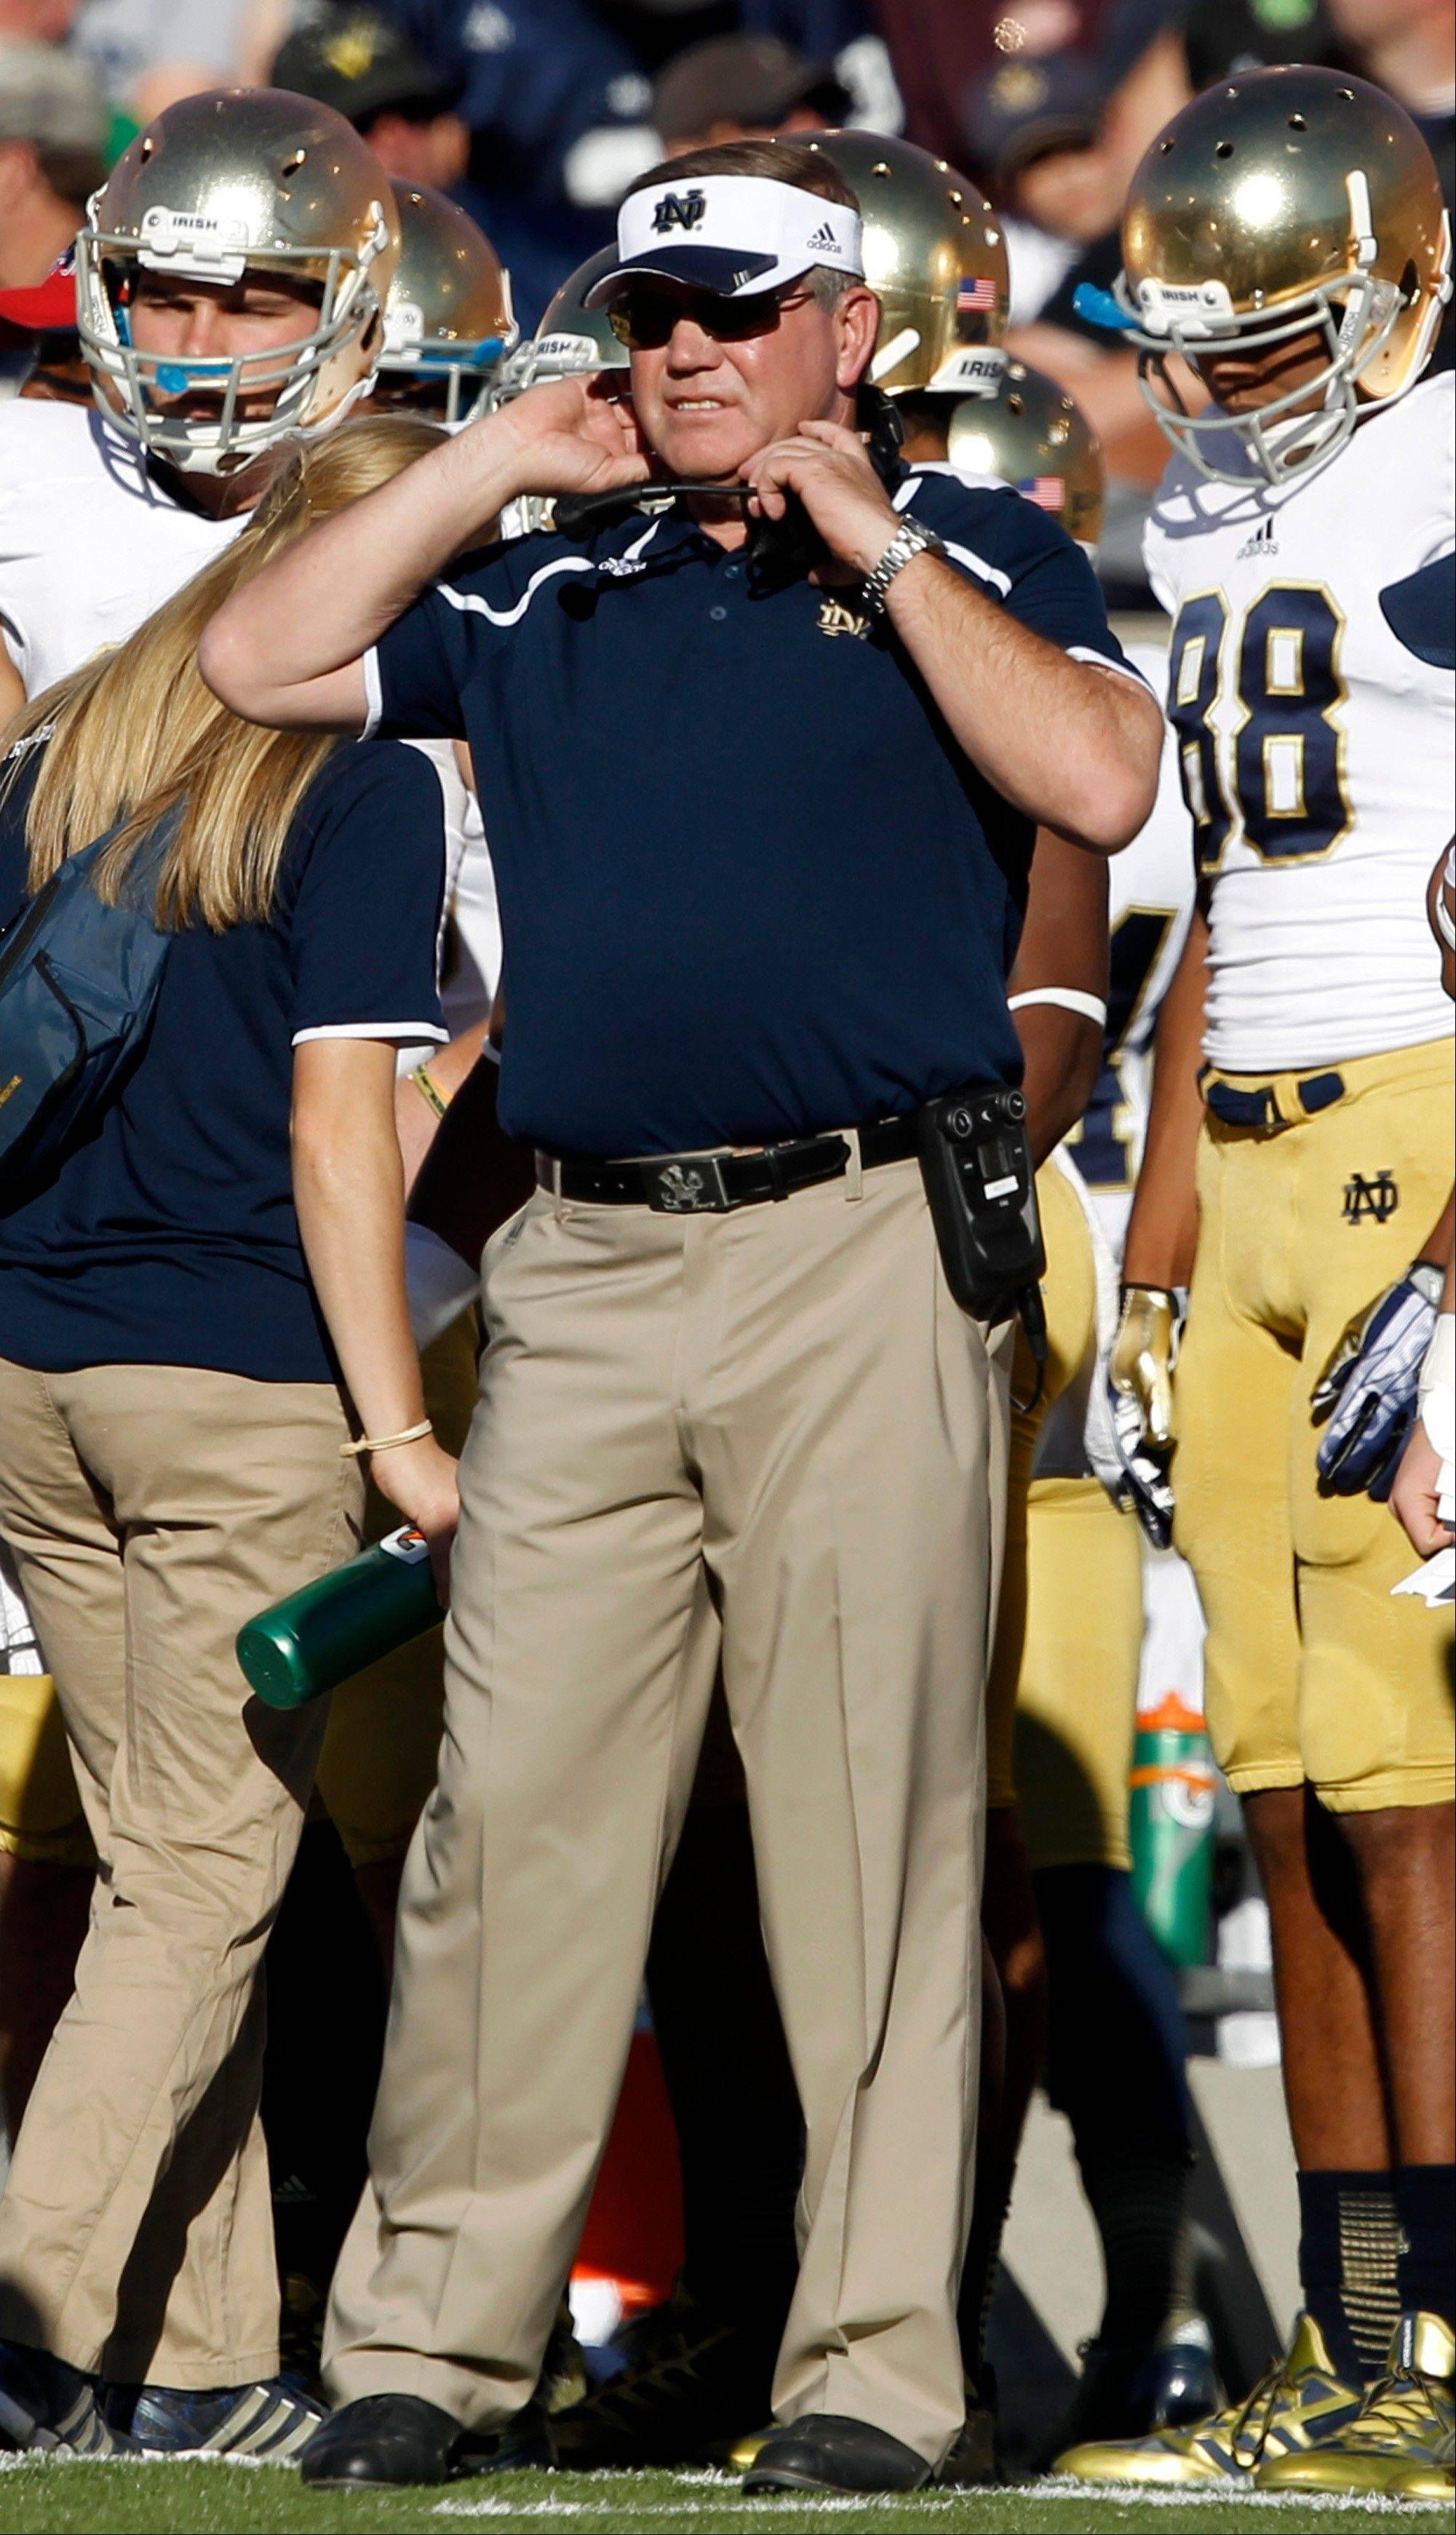 Notre Dame head coach Brian Kelly watches the second quarter of Saturday's road game against Air Force.